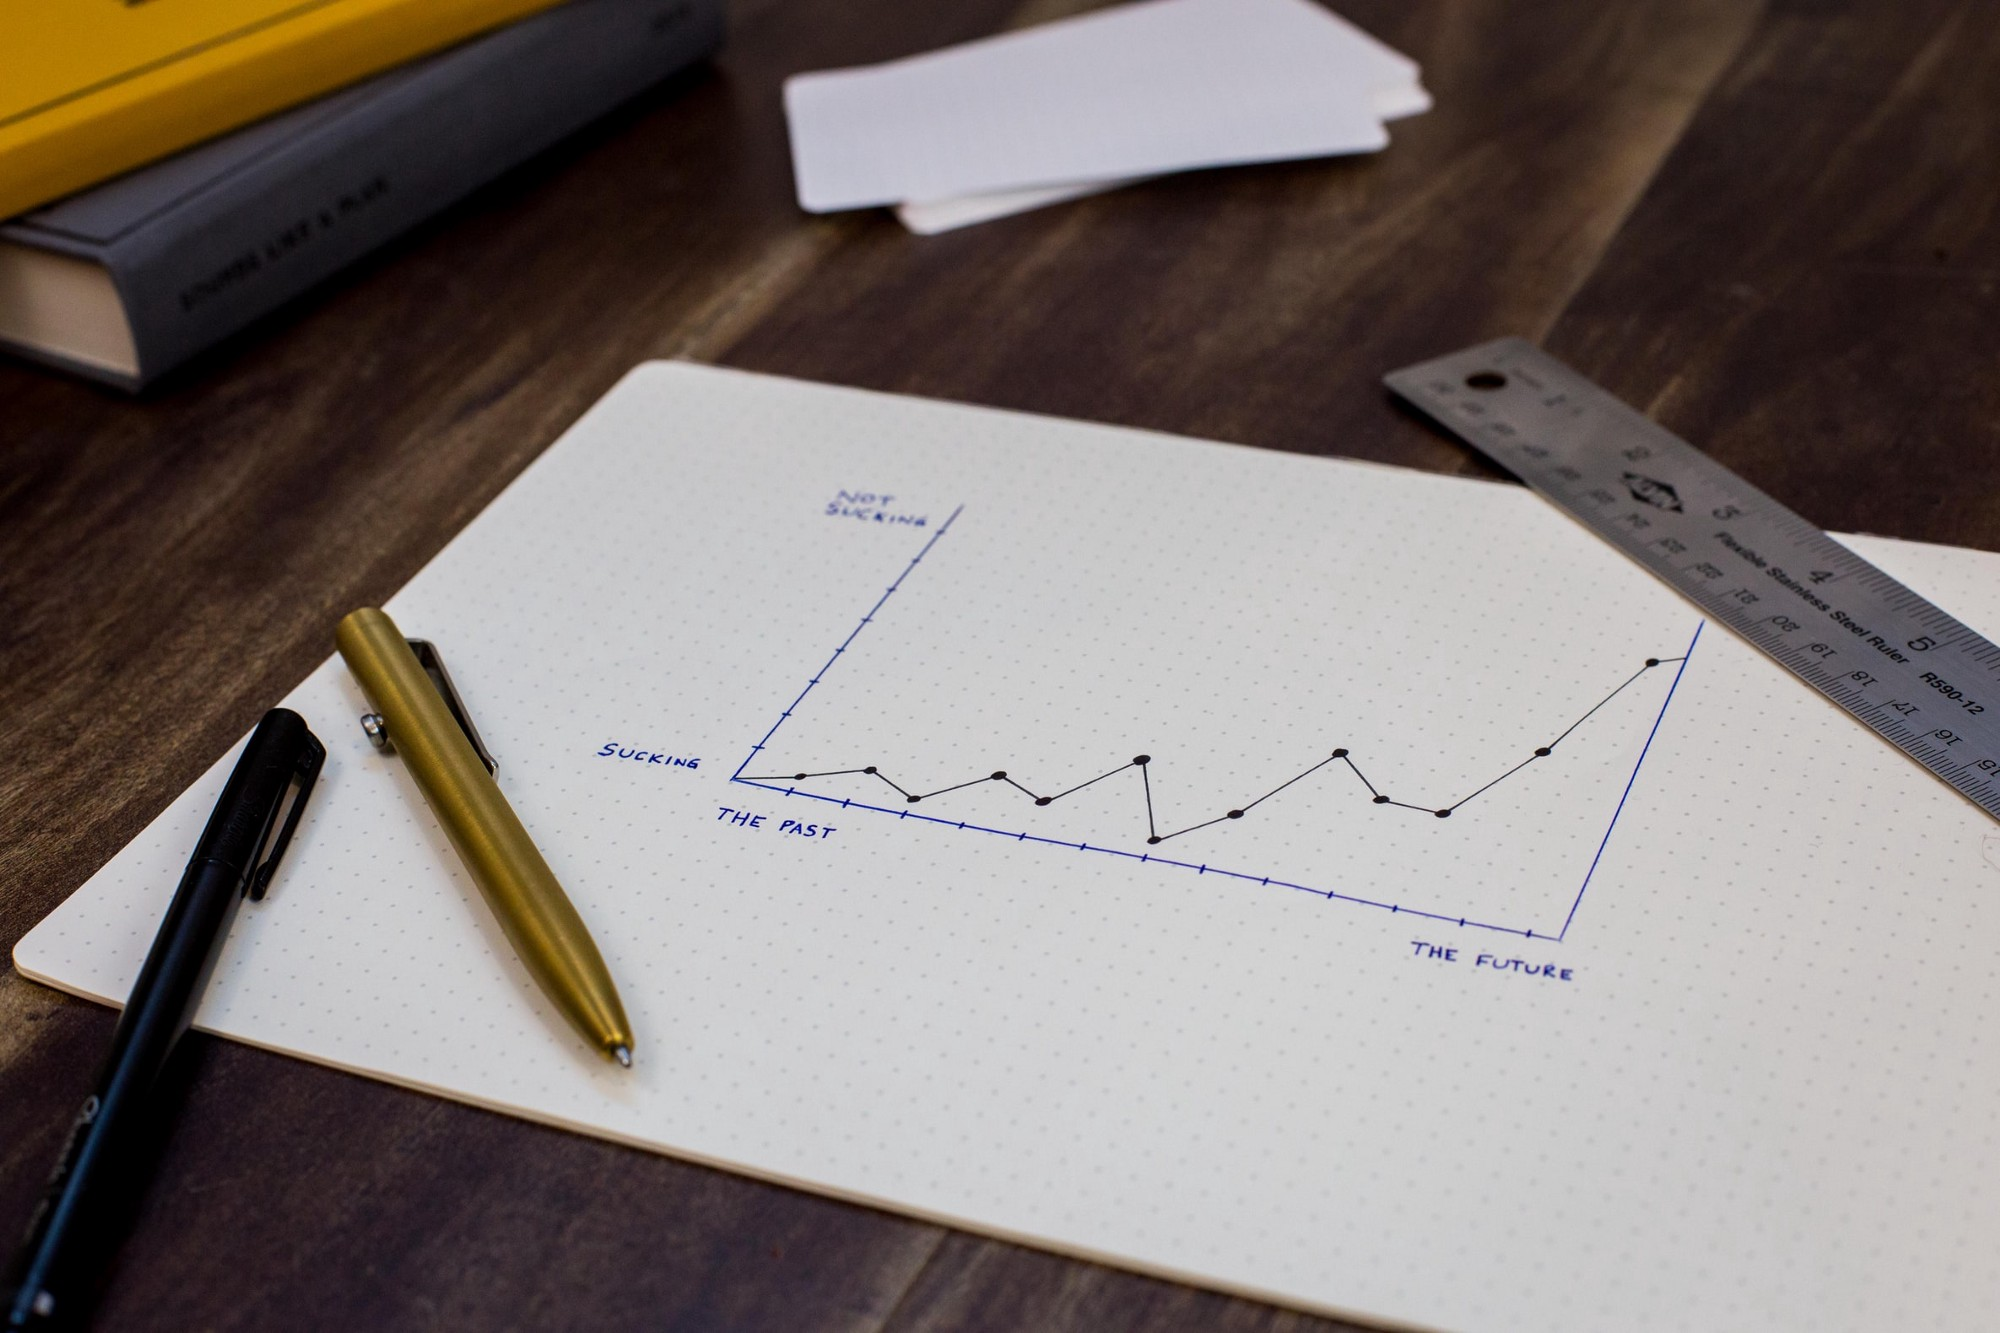 Paper with a graph plotting data points on a table with a ruler and pens.